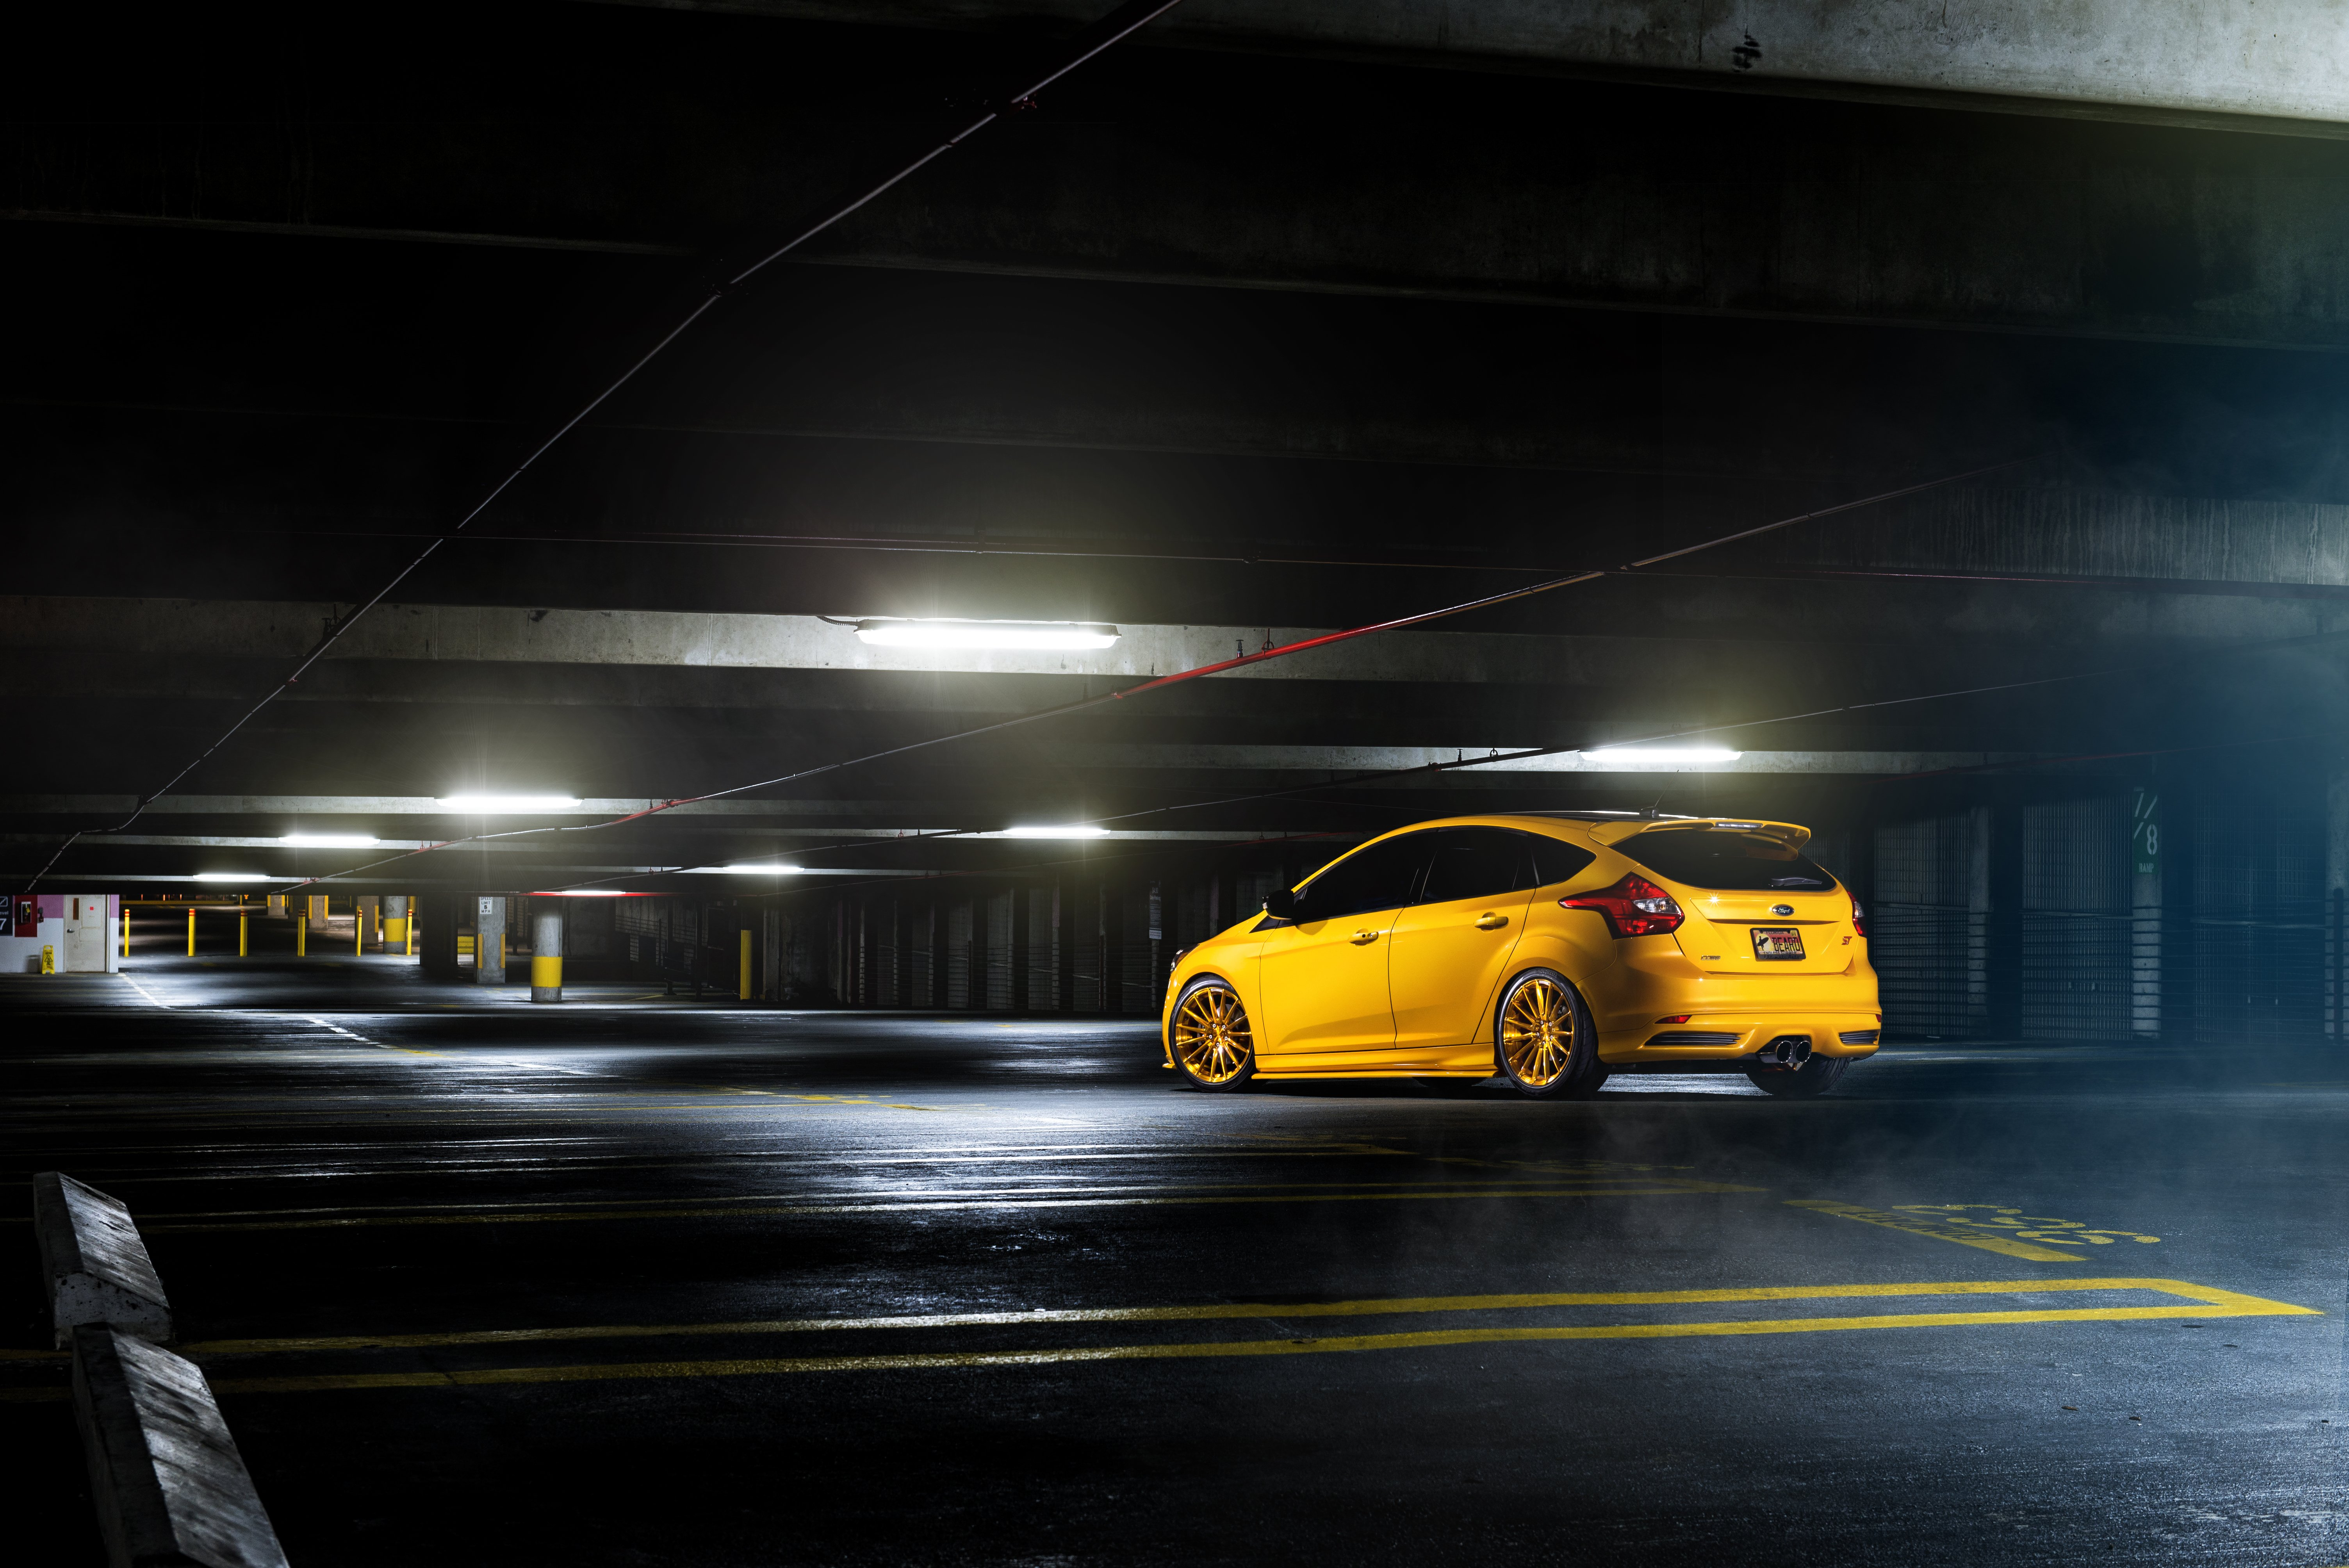 Ford Focus St Wallpaper 6016x4016 370964 Wallpaperup